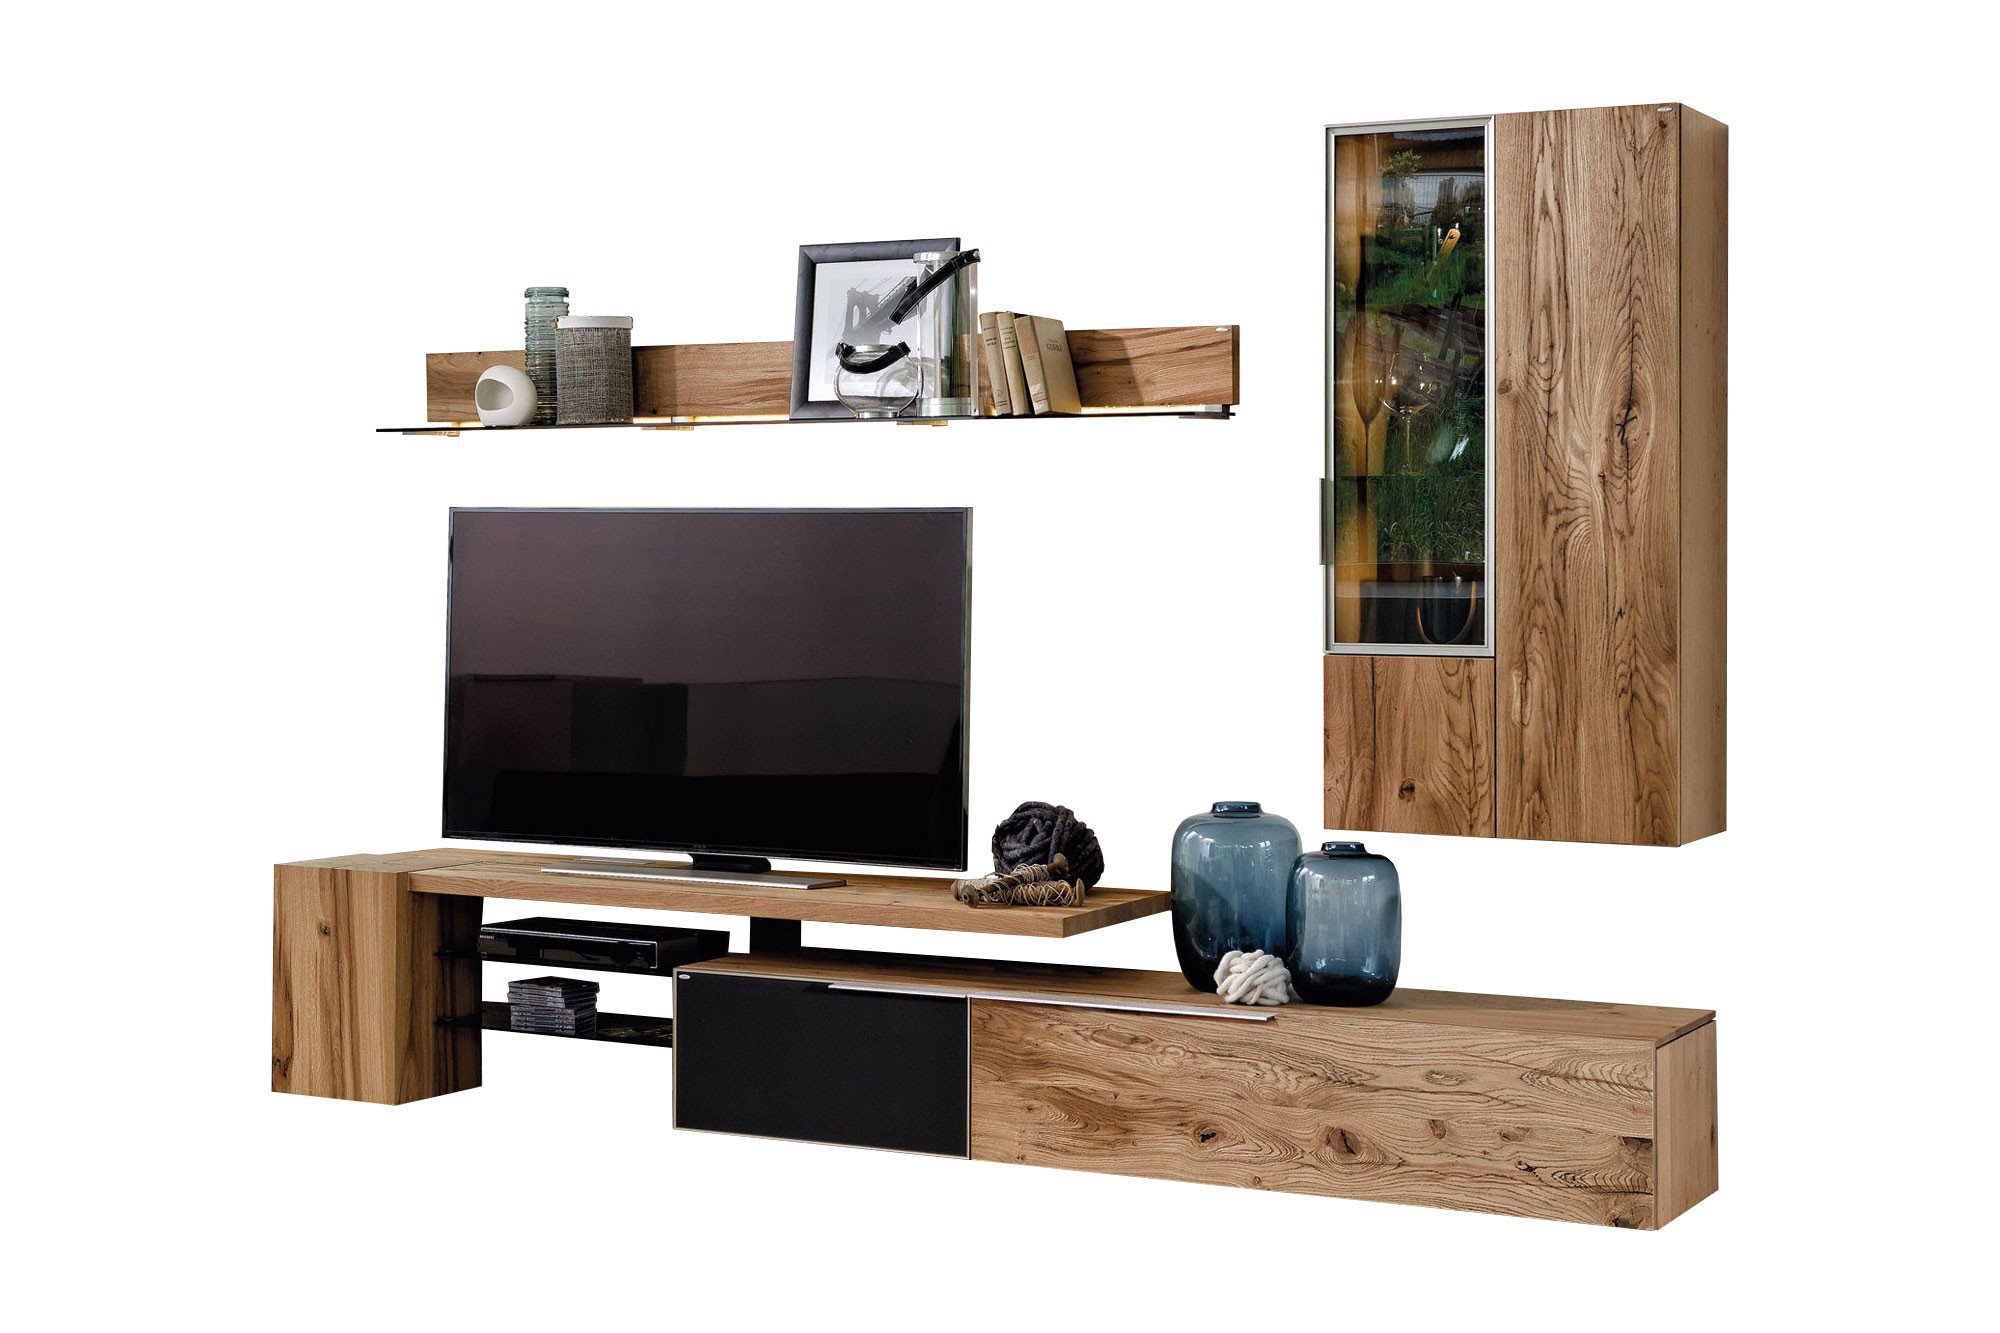 voglauer wohnwand v alpin 224 eiche colorglas m bel. Black Bedroom Furniture Sets. Home Design Ideas